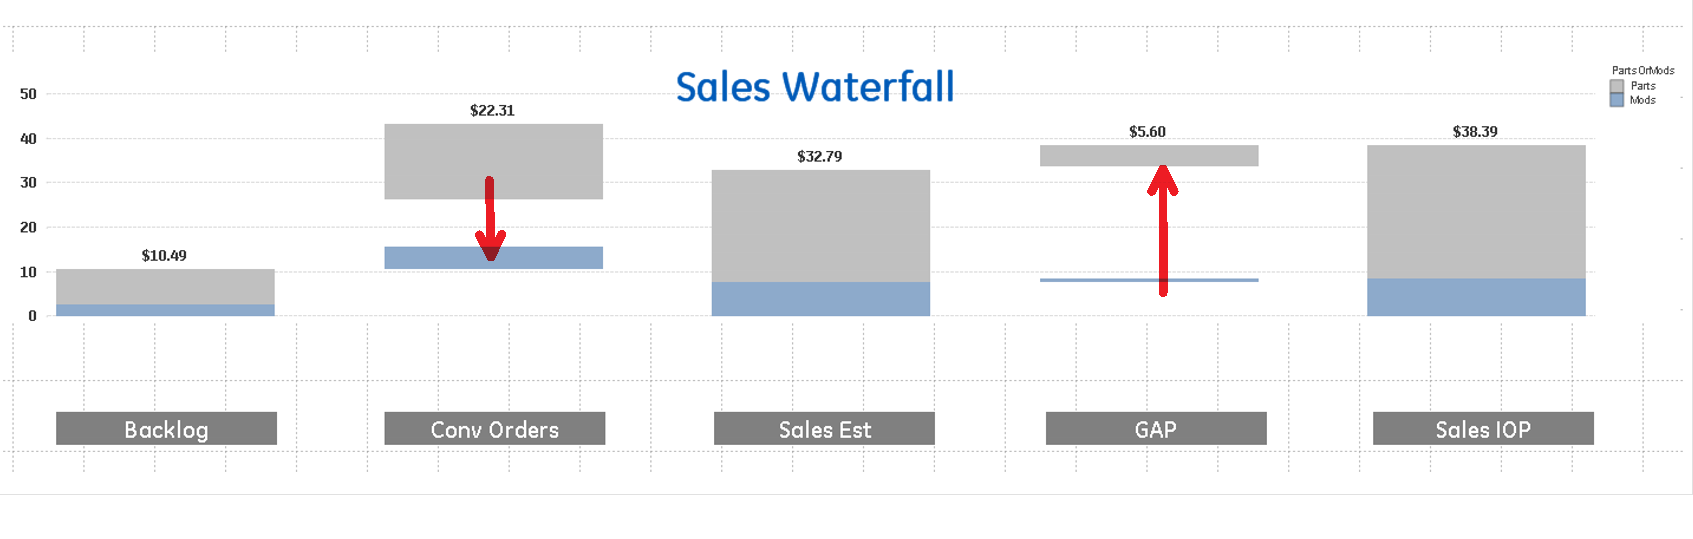 sales waterfall example.png